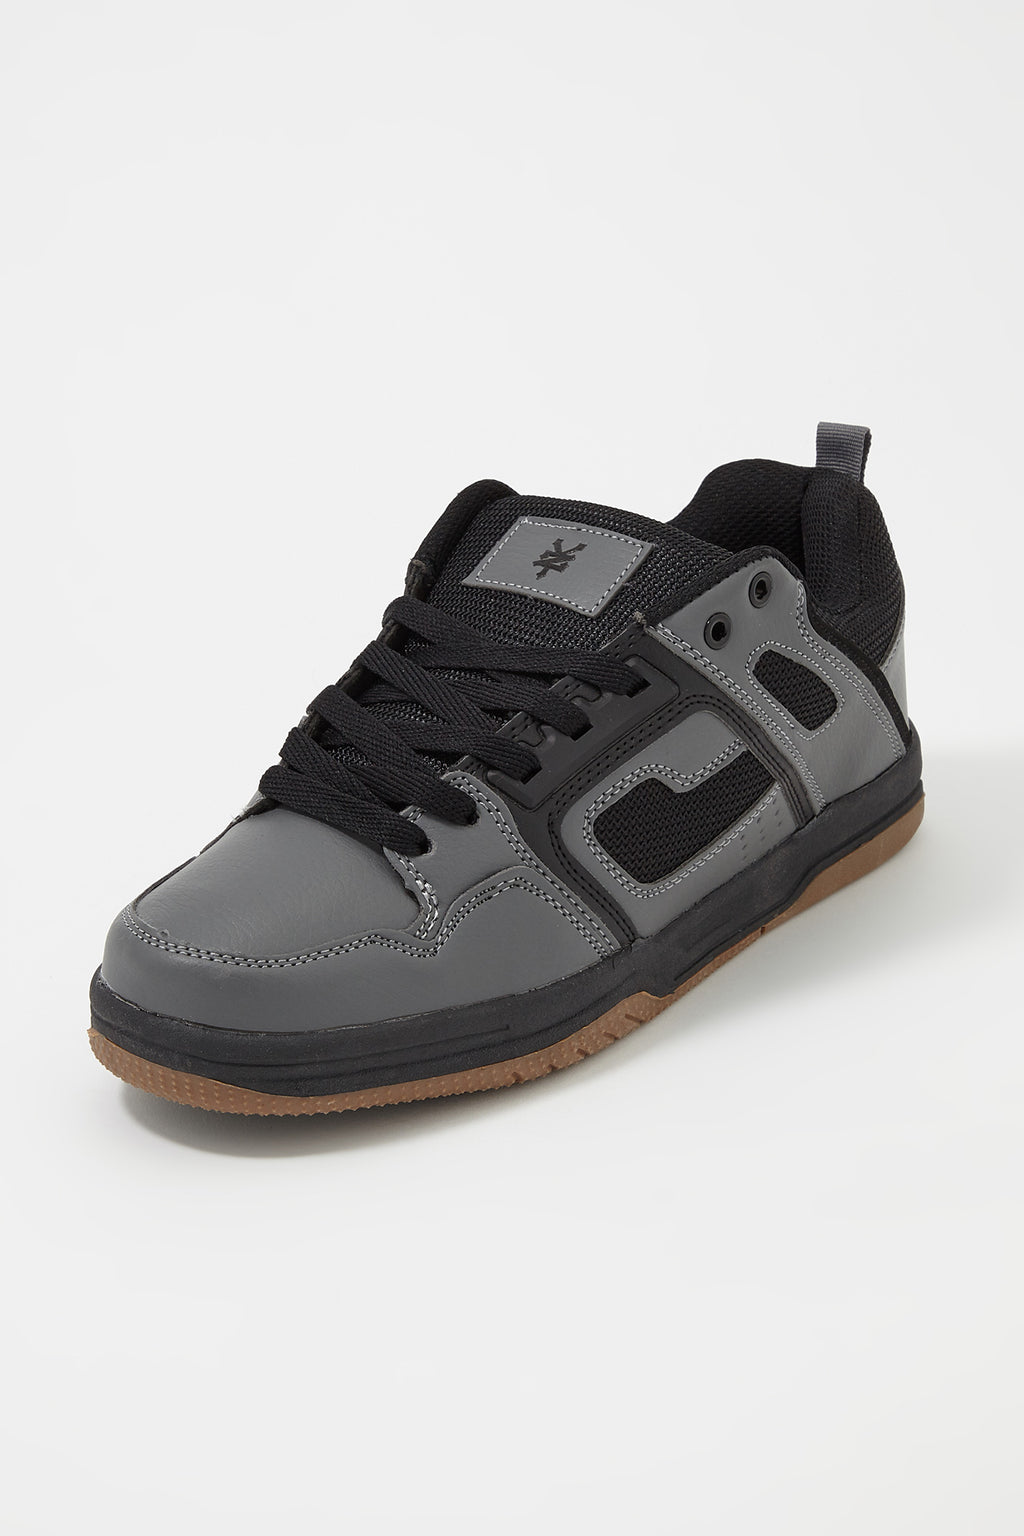 Zoo York Mens Skate Shoes